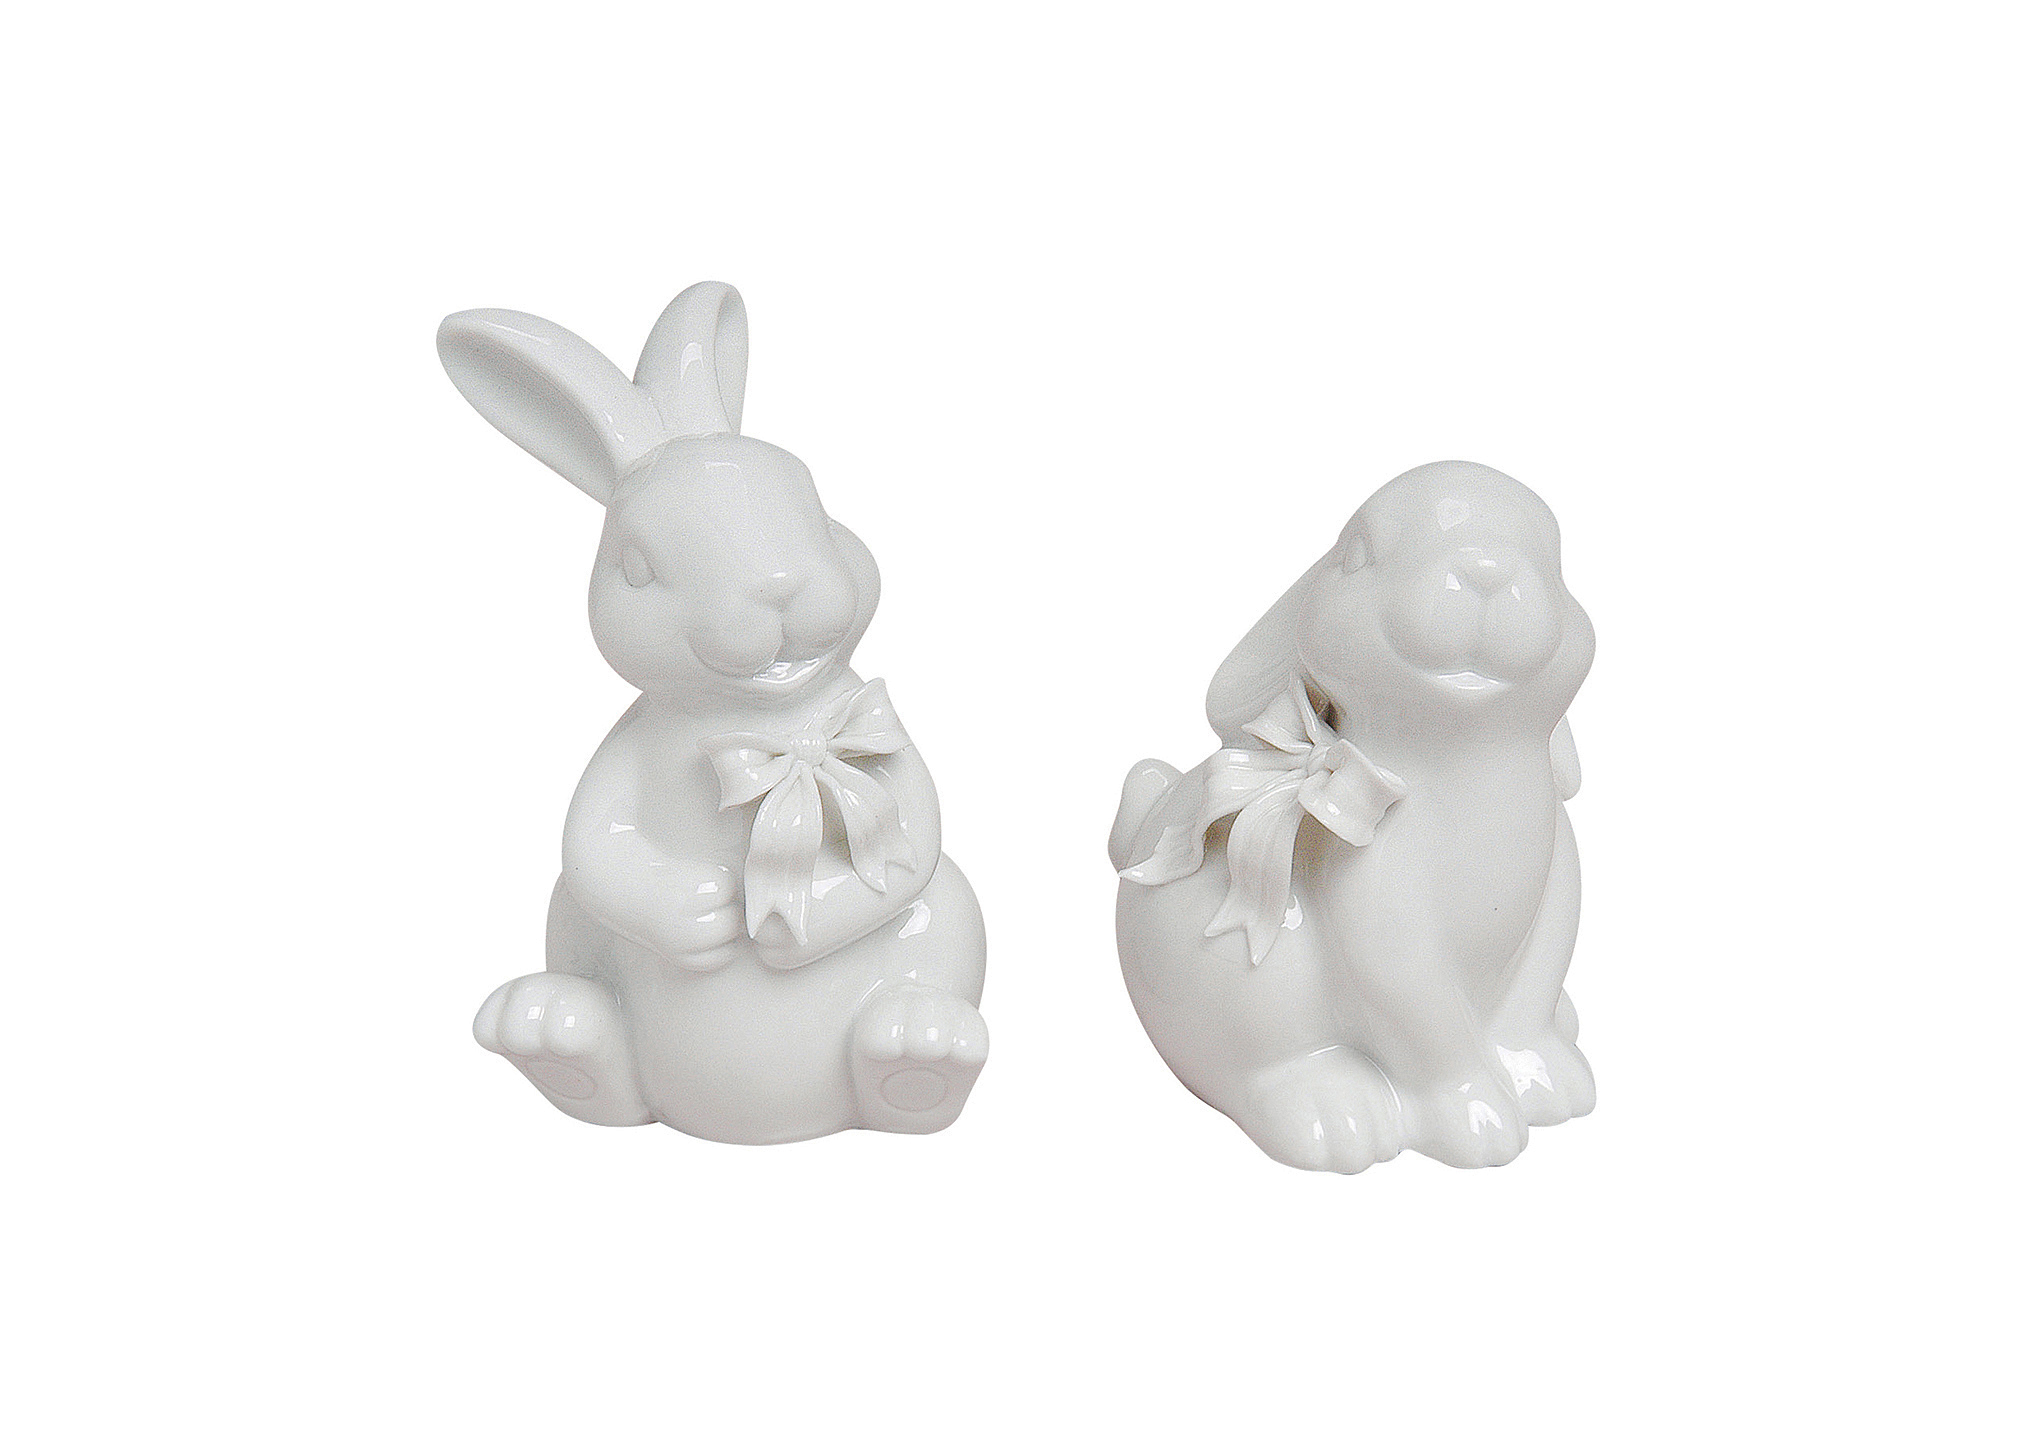 RABBIT CERAMIC 12CM